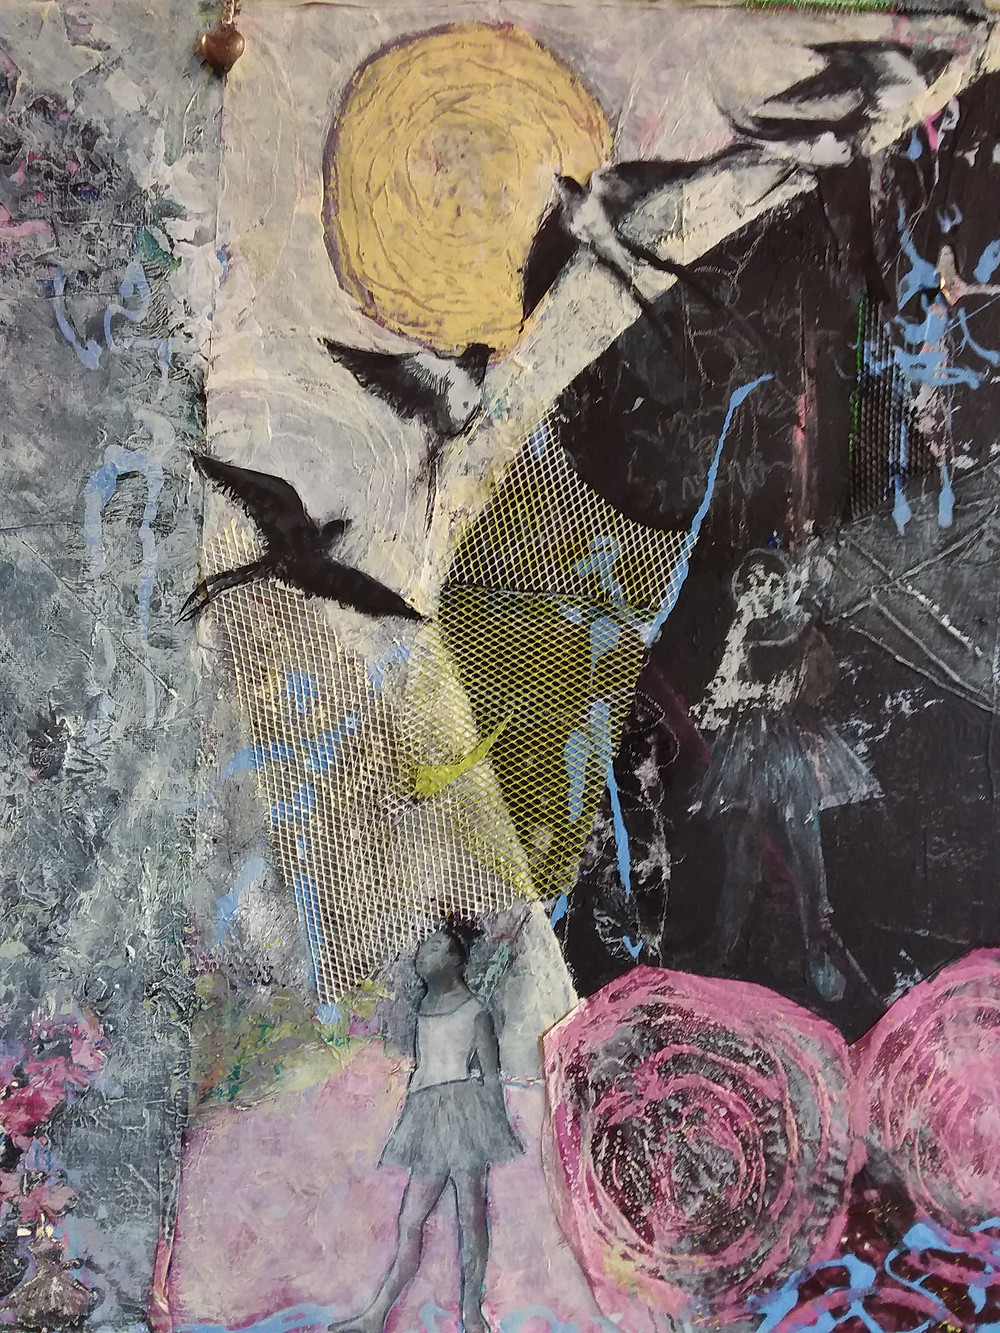 Abstract-exhibition-mixed-media-by-kathryn-jacobsen